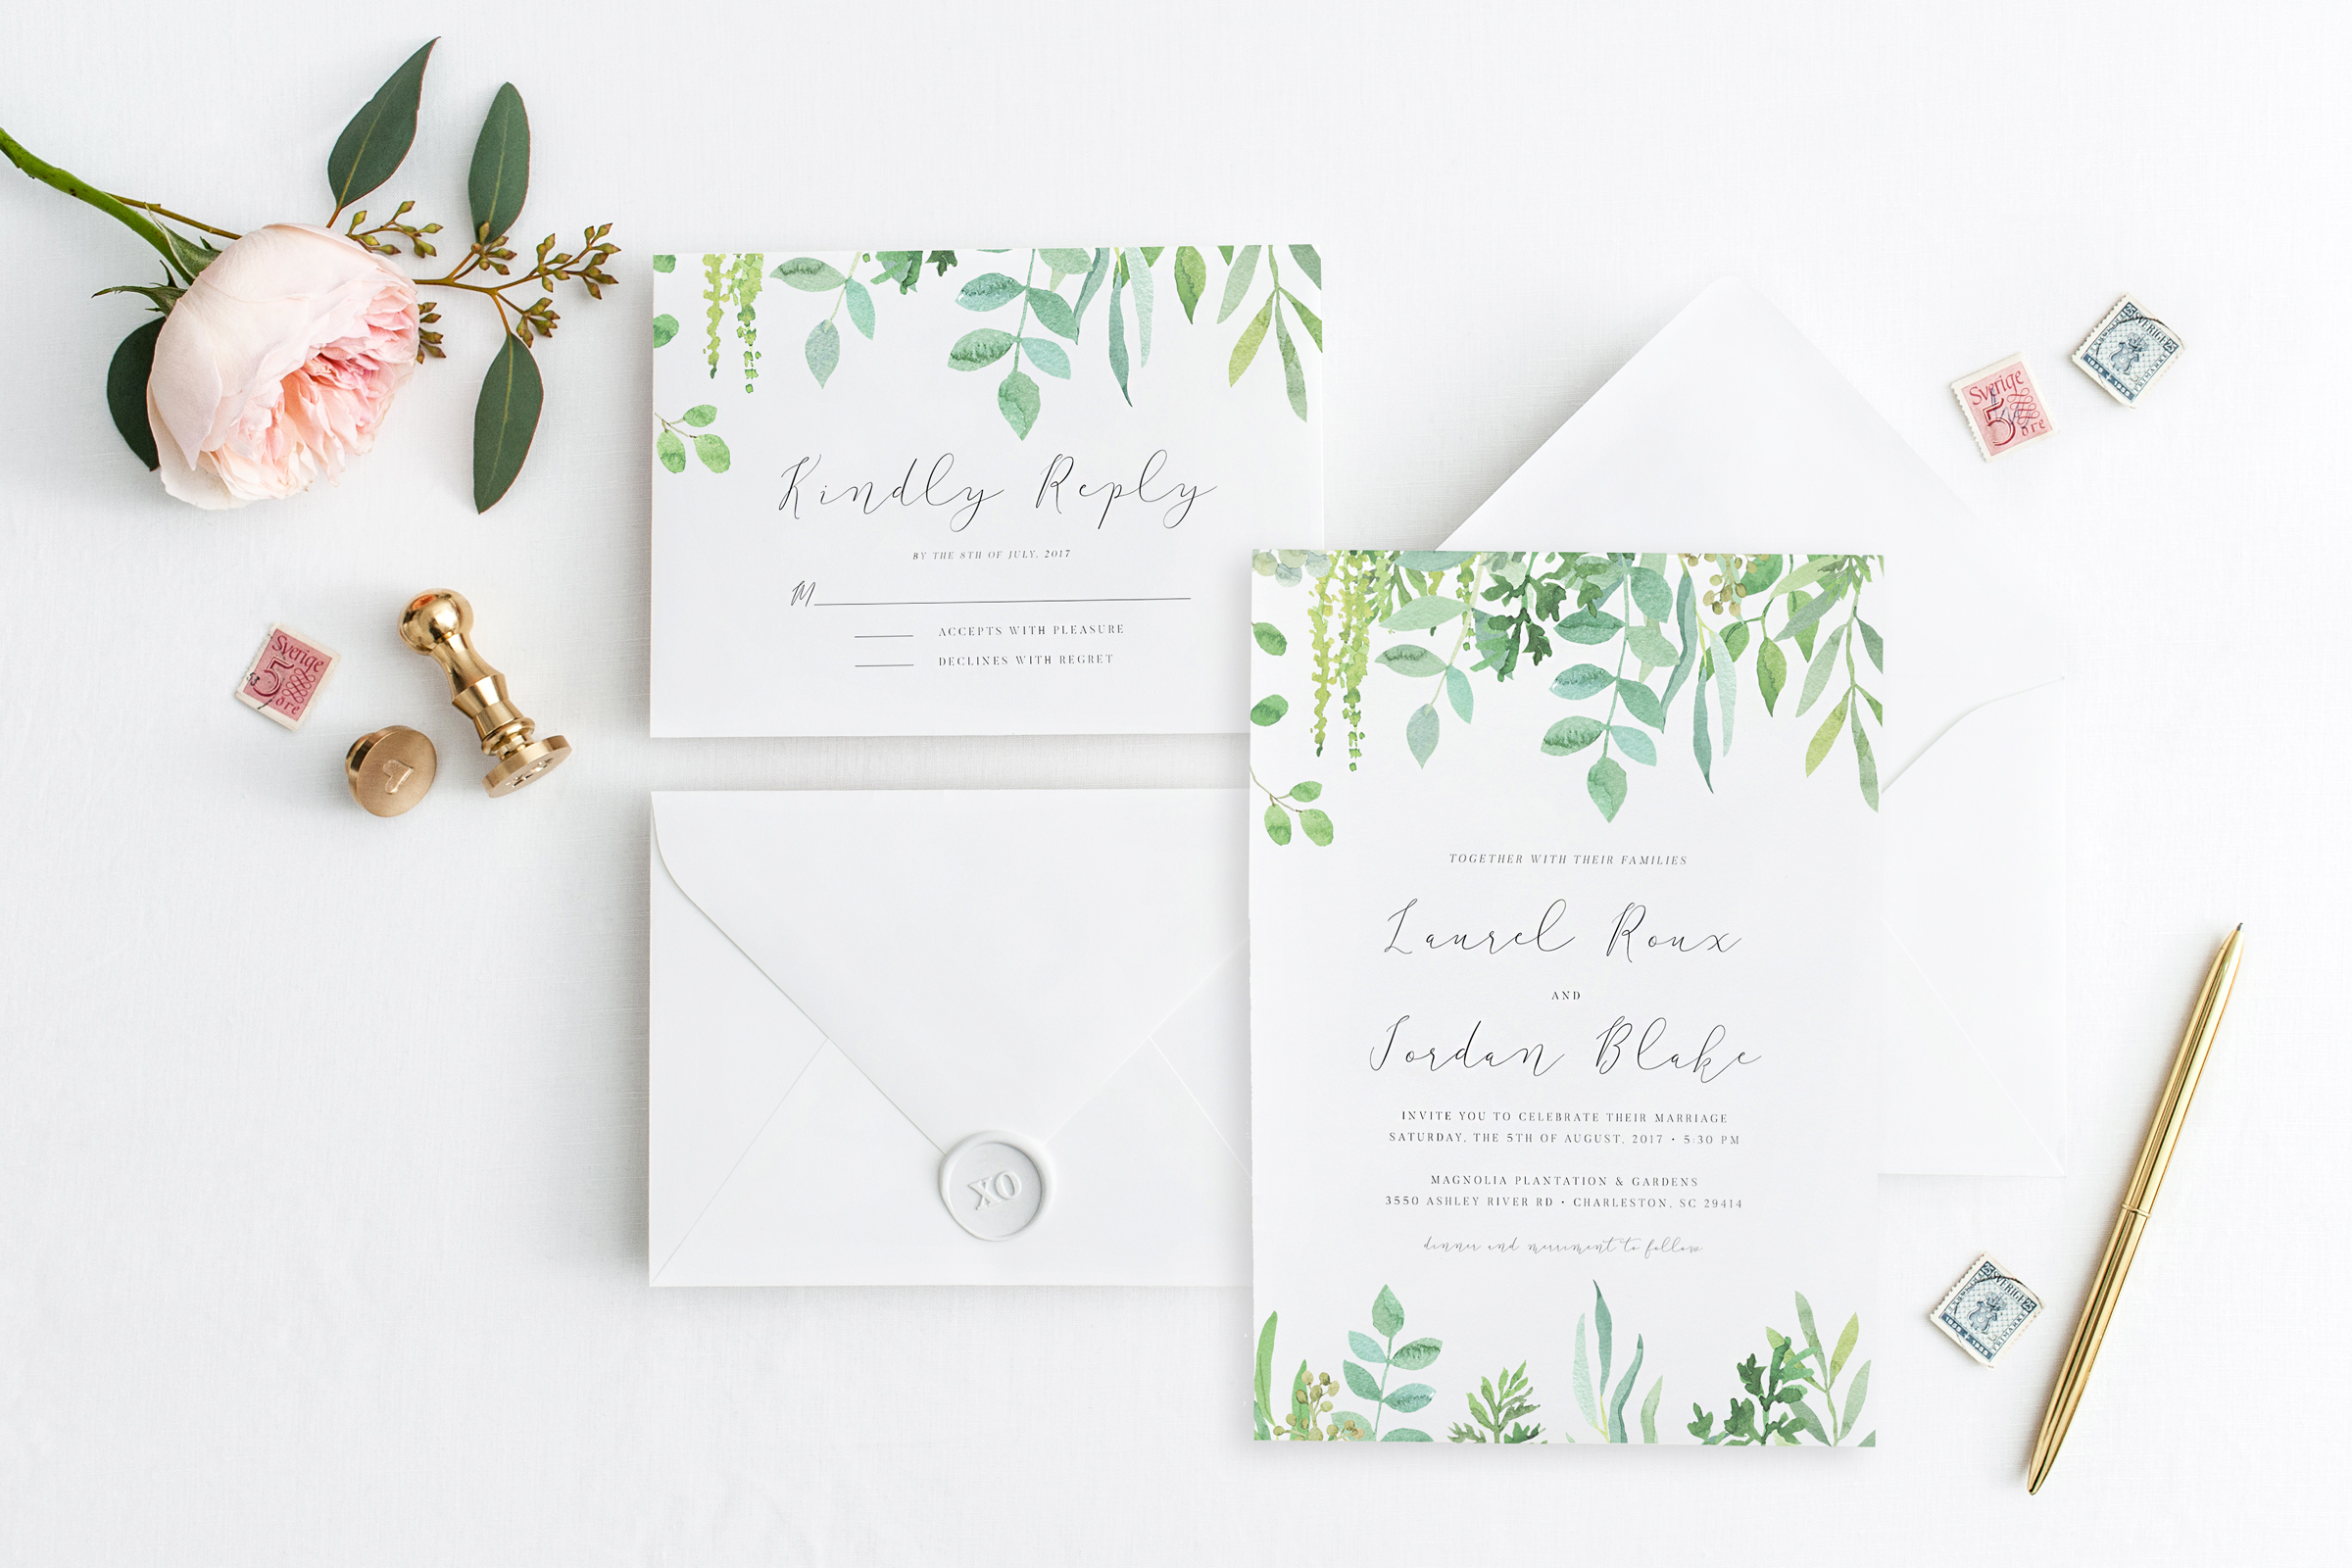 Whimsical Botanicals + Eucalyptus Greens